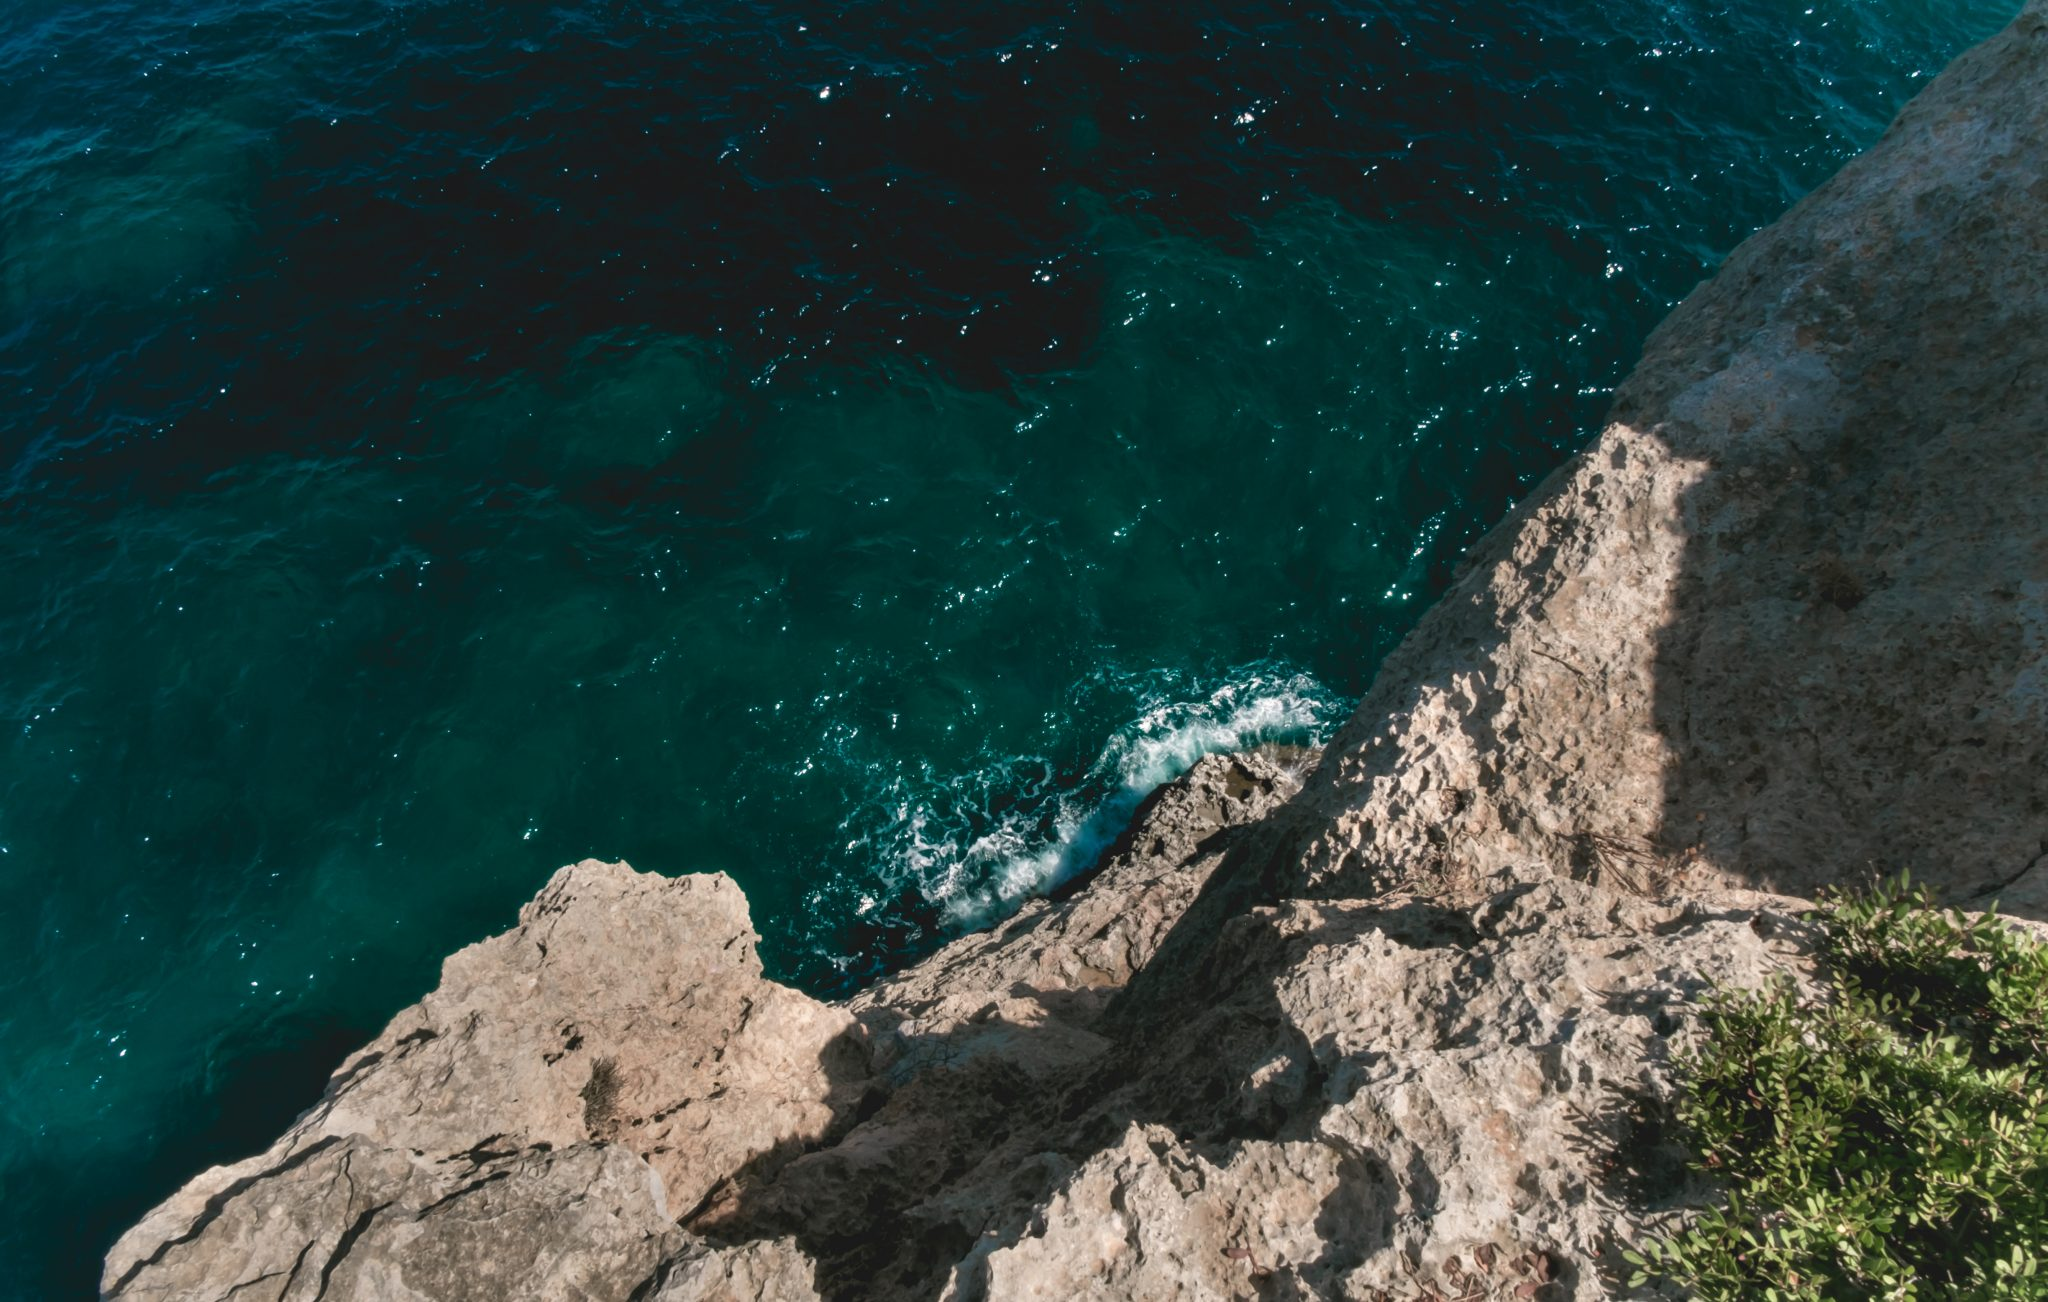 View of the sea from a cliff photo by Jo Kassis